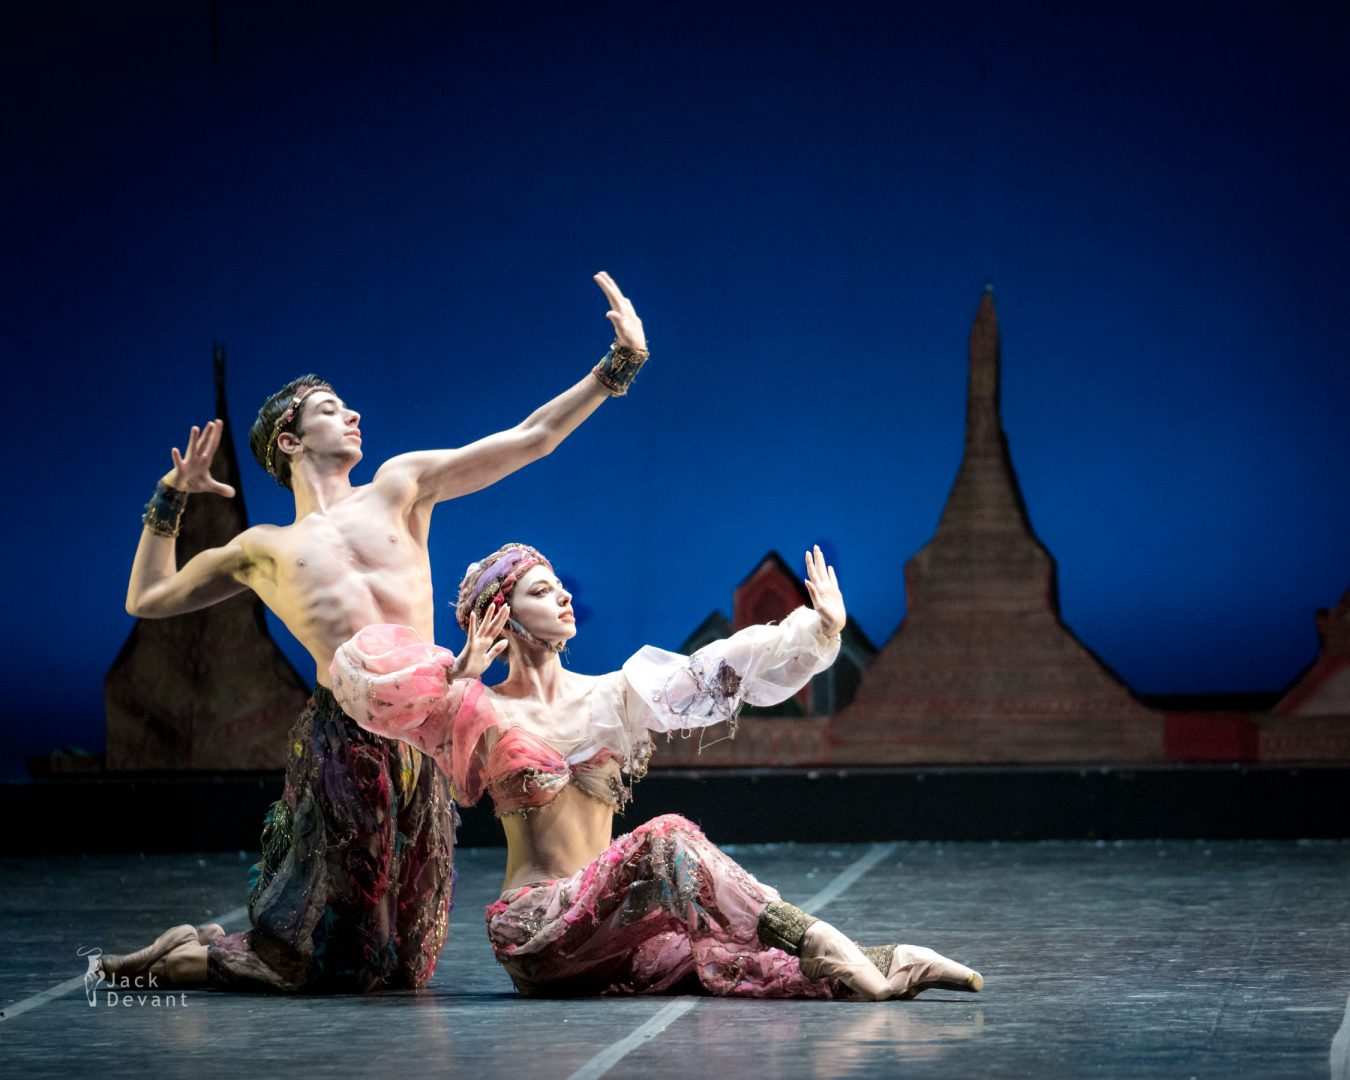 Susanna Elviretti and Umberto De Santi in Danza araba in The Nutcracker (Schiaccianoci)